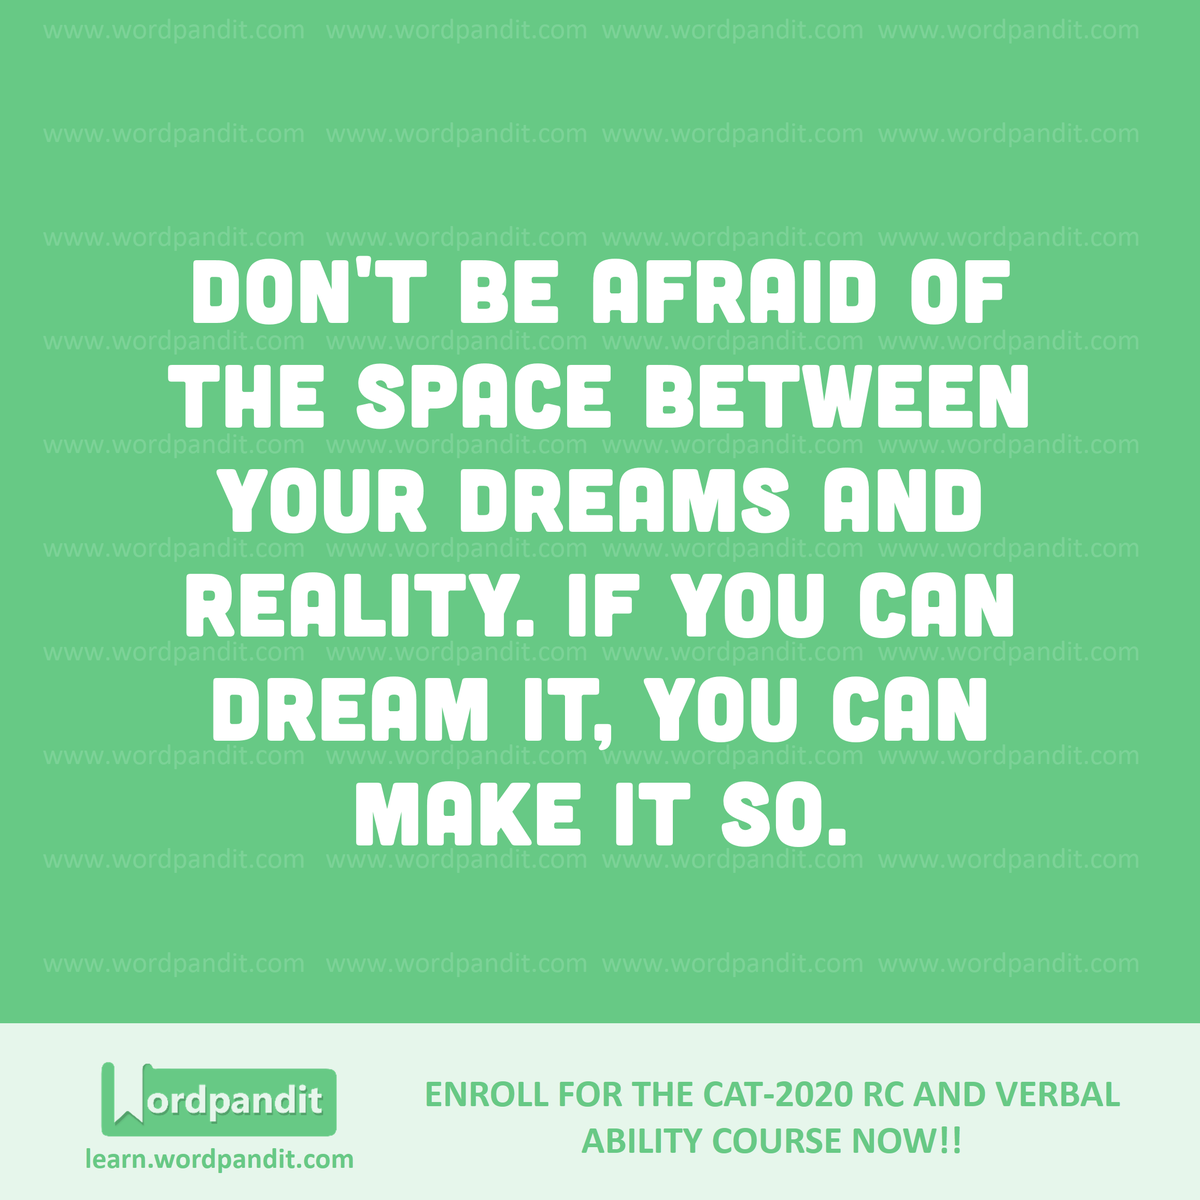 Don't be afraid of the space between your dreams and reality. If you can dream it, you can make it so.  #motivation #wordpandit #quotesdaily #examprep #bank #ssc #ipmat #mba #pgdbm #iims #varc #rc #cat2020 #gmat #gre #mbaprep #motivationalquote #nevergiveuppic.twitter.com/XwTp0qi9P4